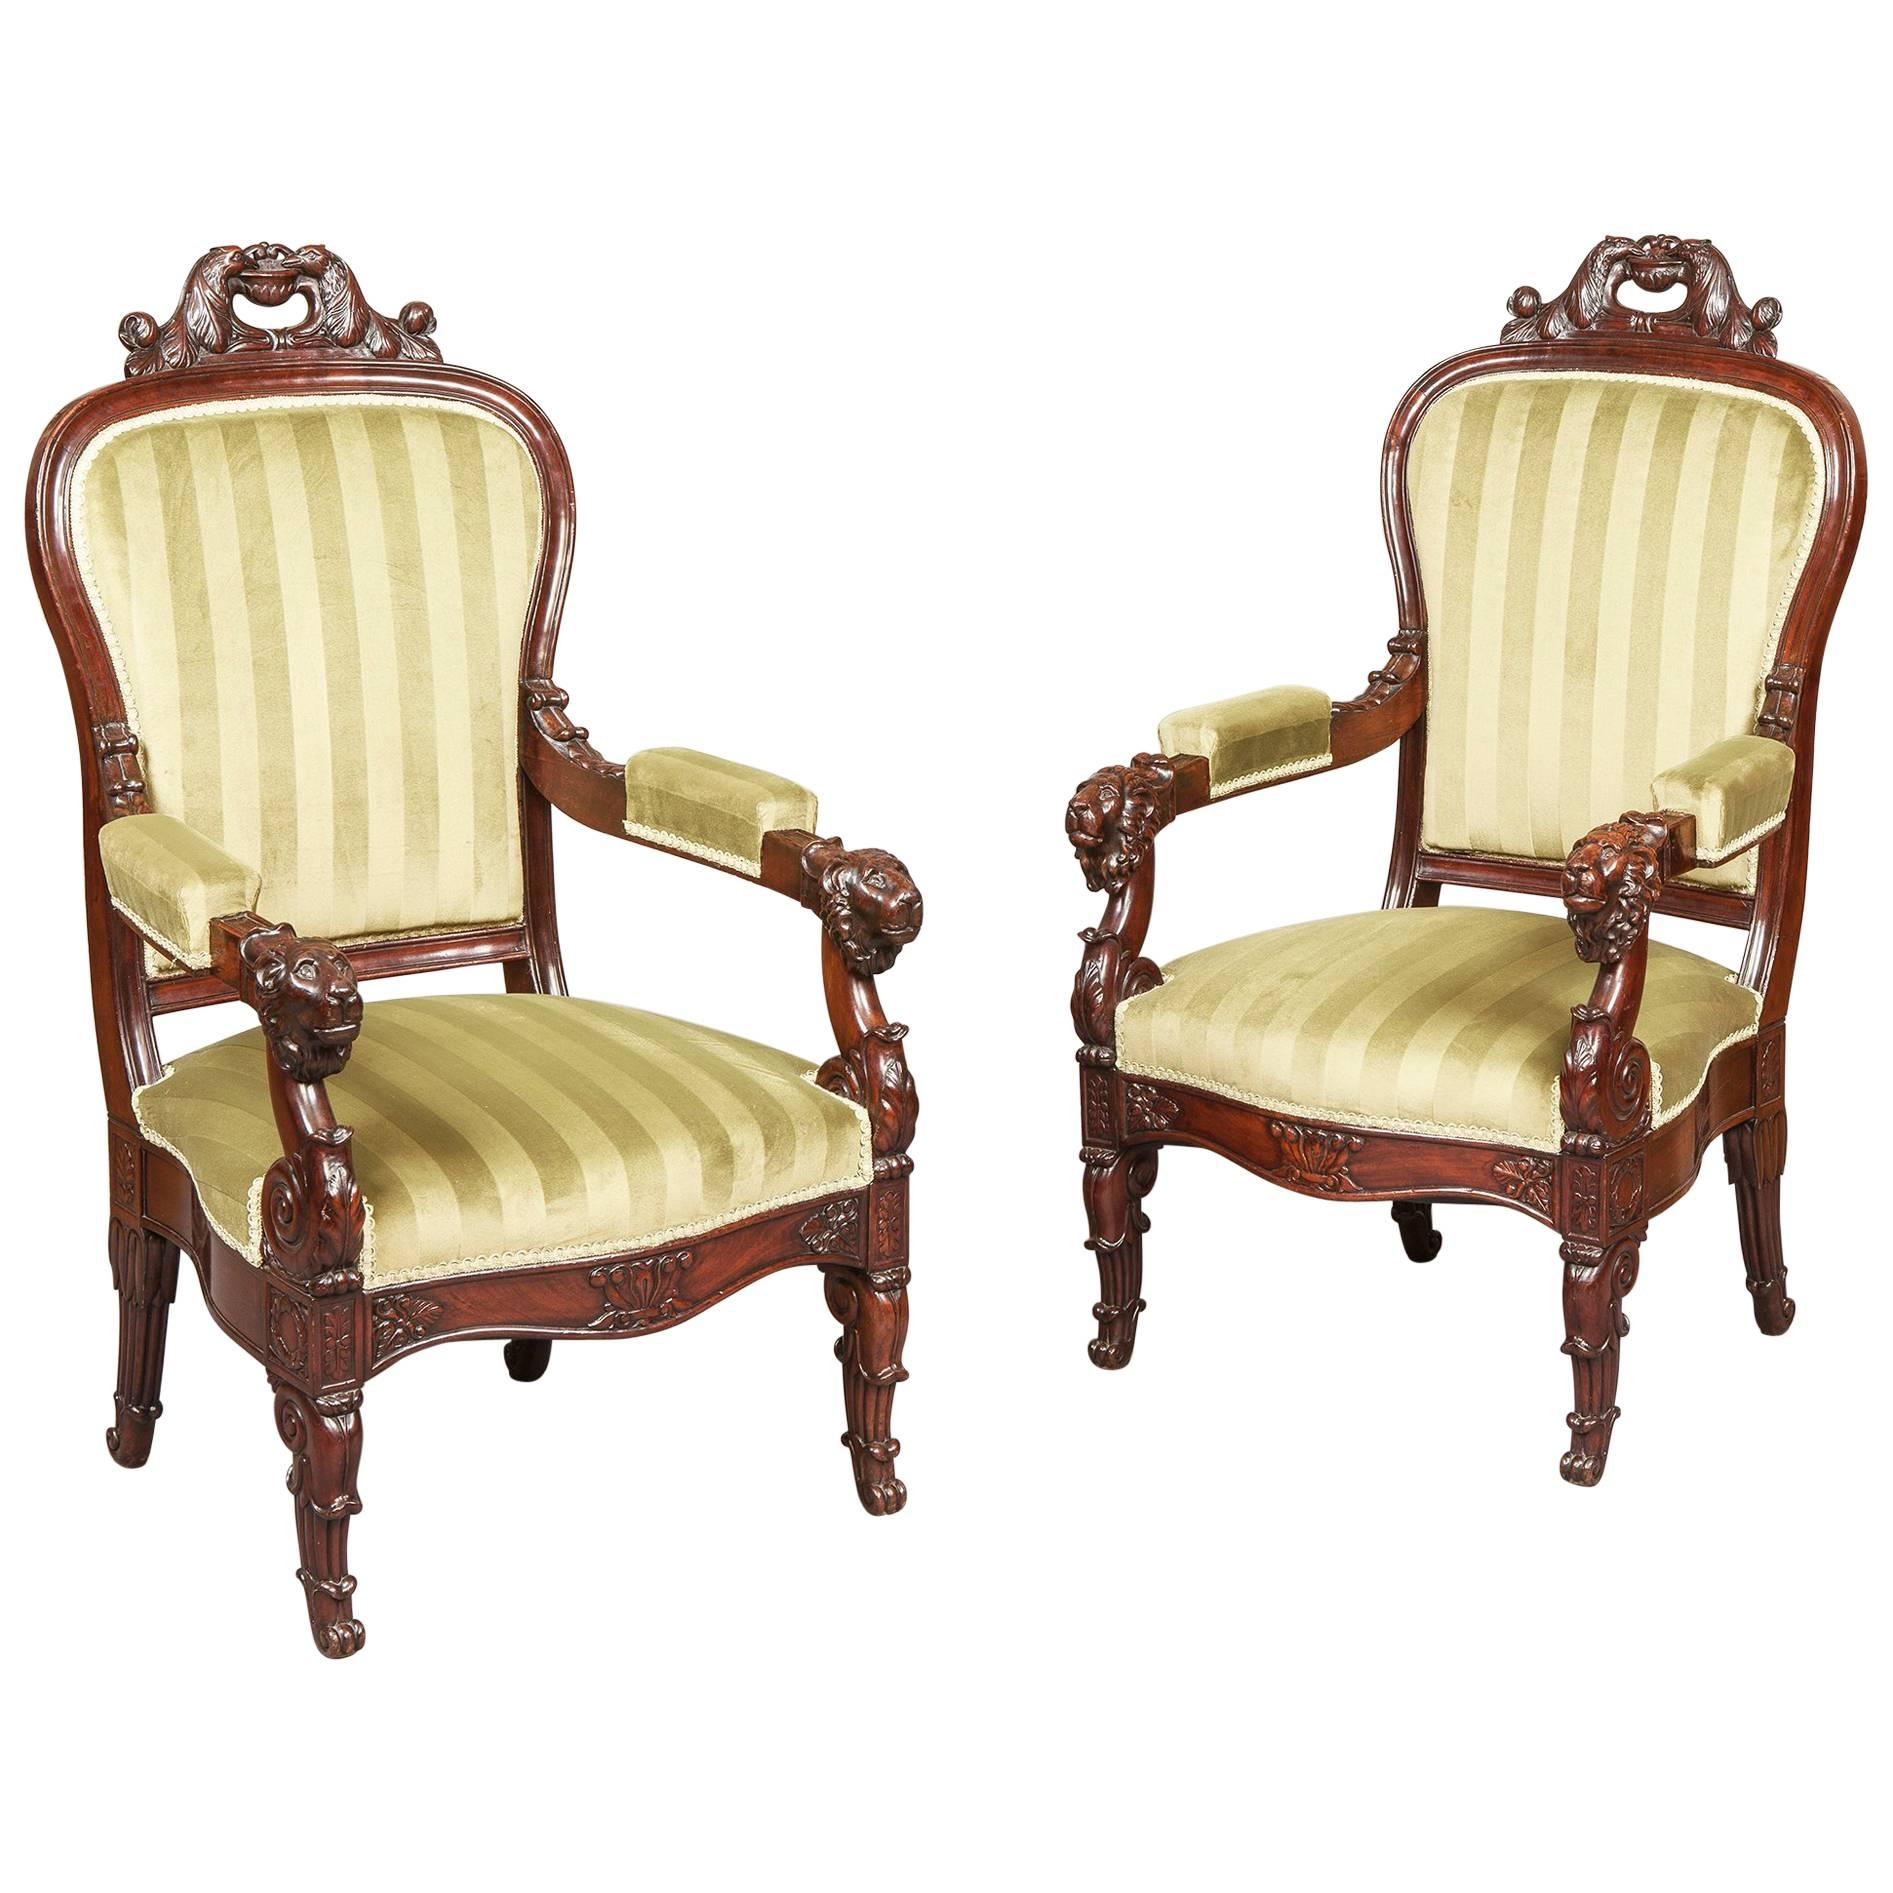 Pair of French Carved Mahogany Armchairs, 19th Century